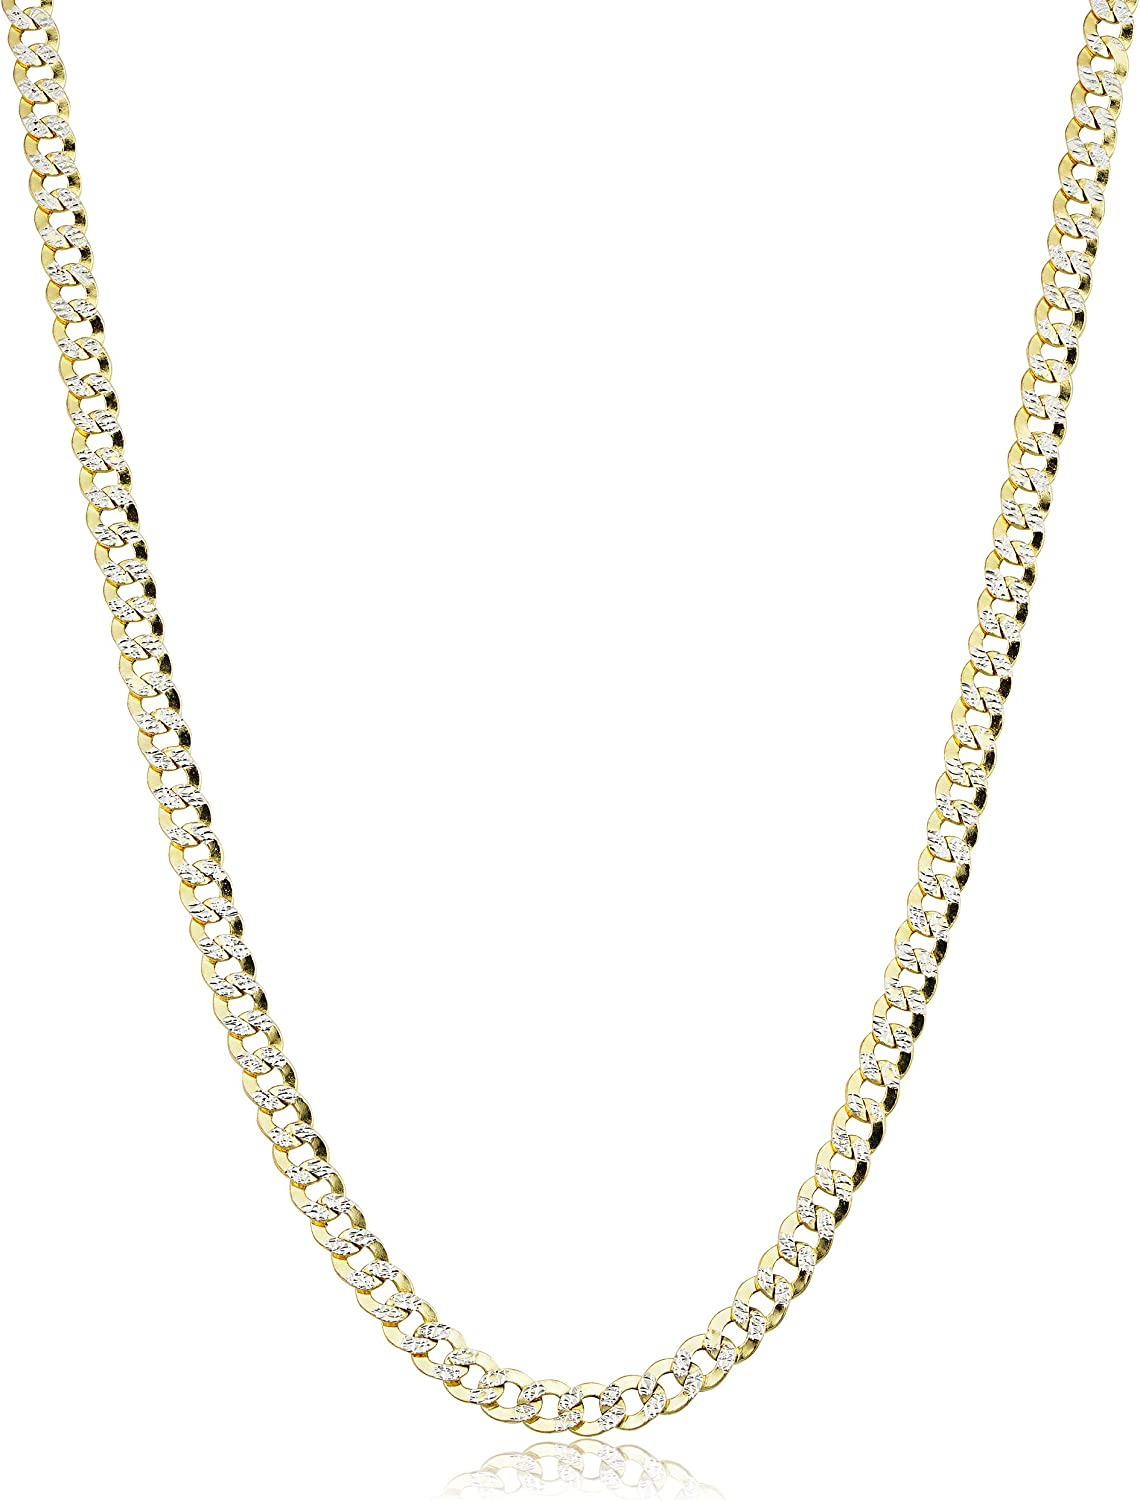 14k Yellow Gold Pave Curb Chain Necklace for Men and Women (4 mm, 20 or 24 inch)